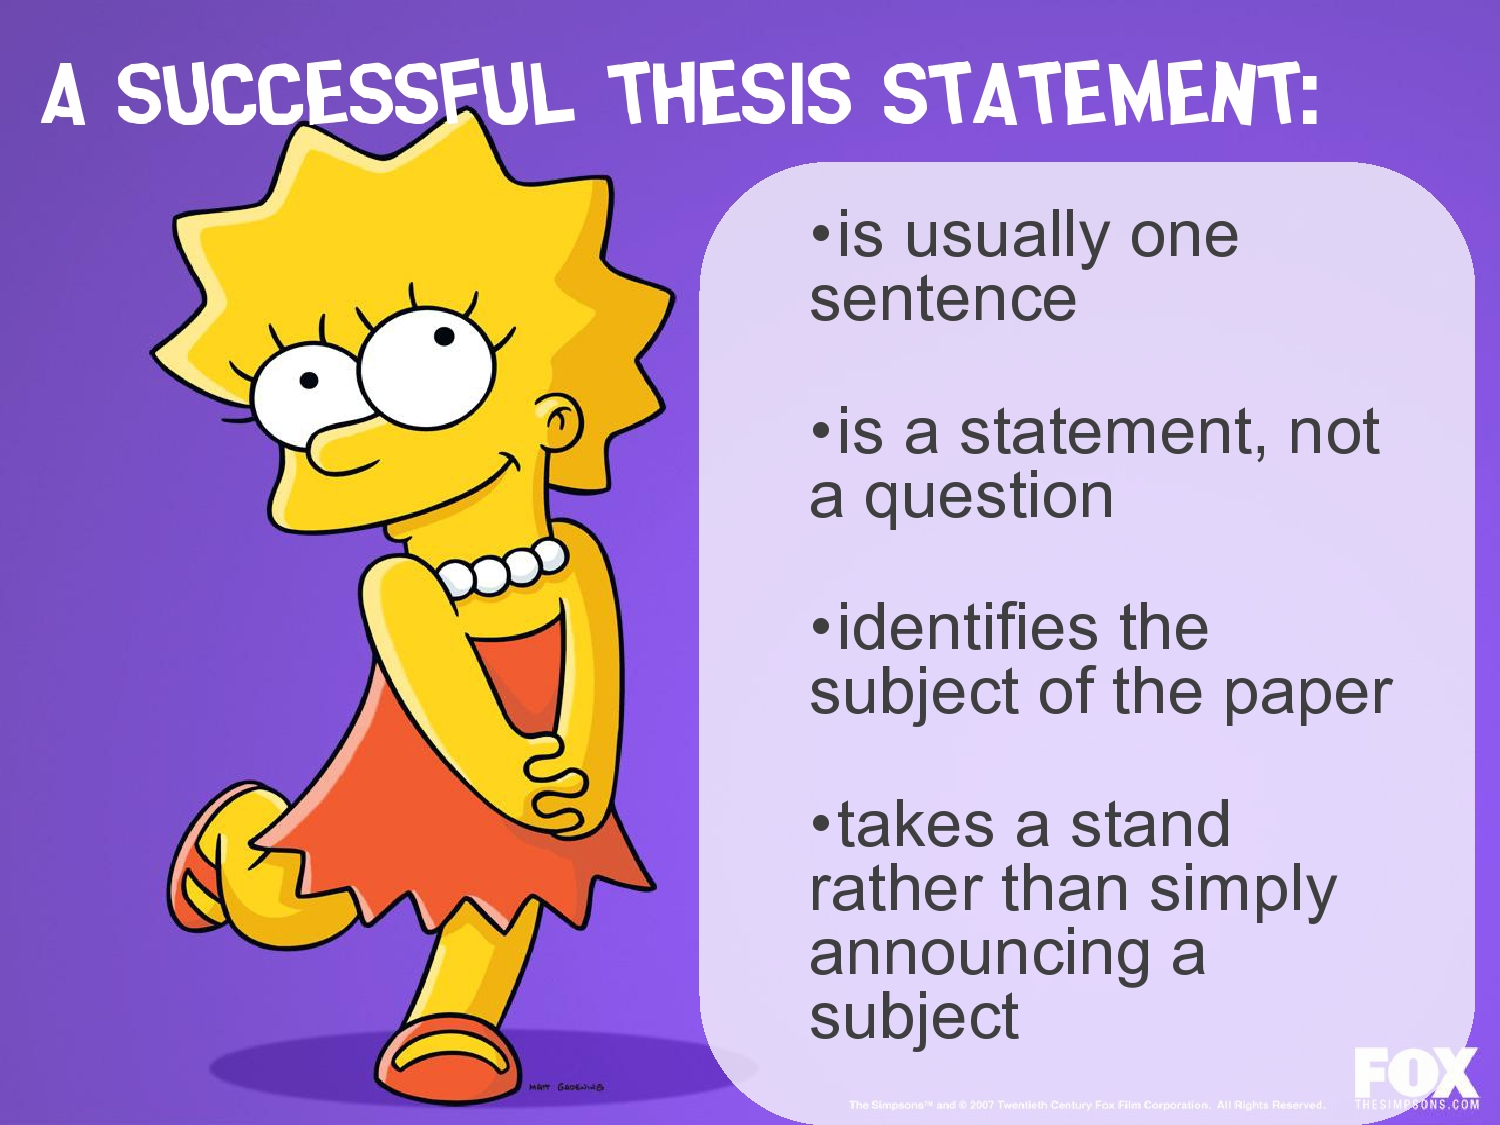 paragraph essay topics for high school columbia business school  writing essays introductions alan barker lisathesis